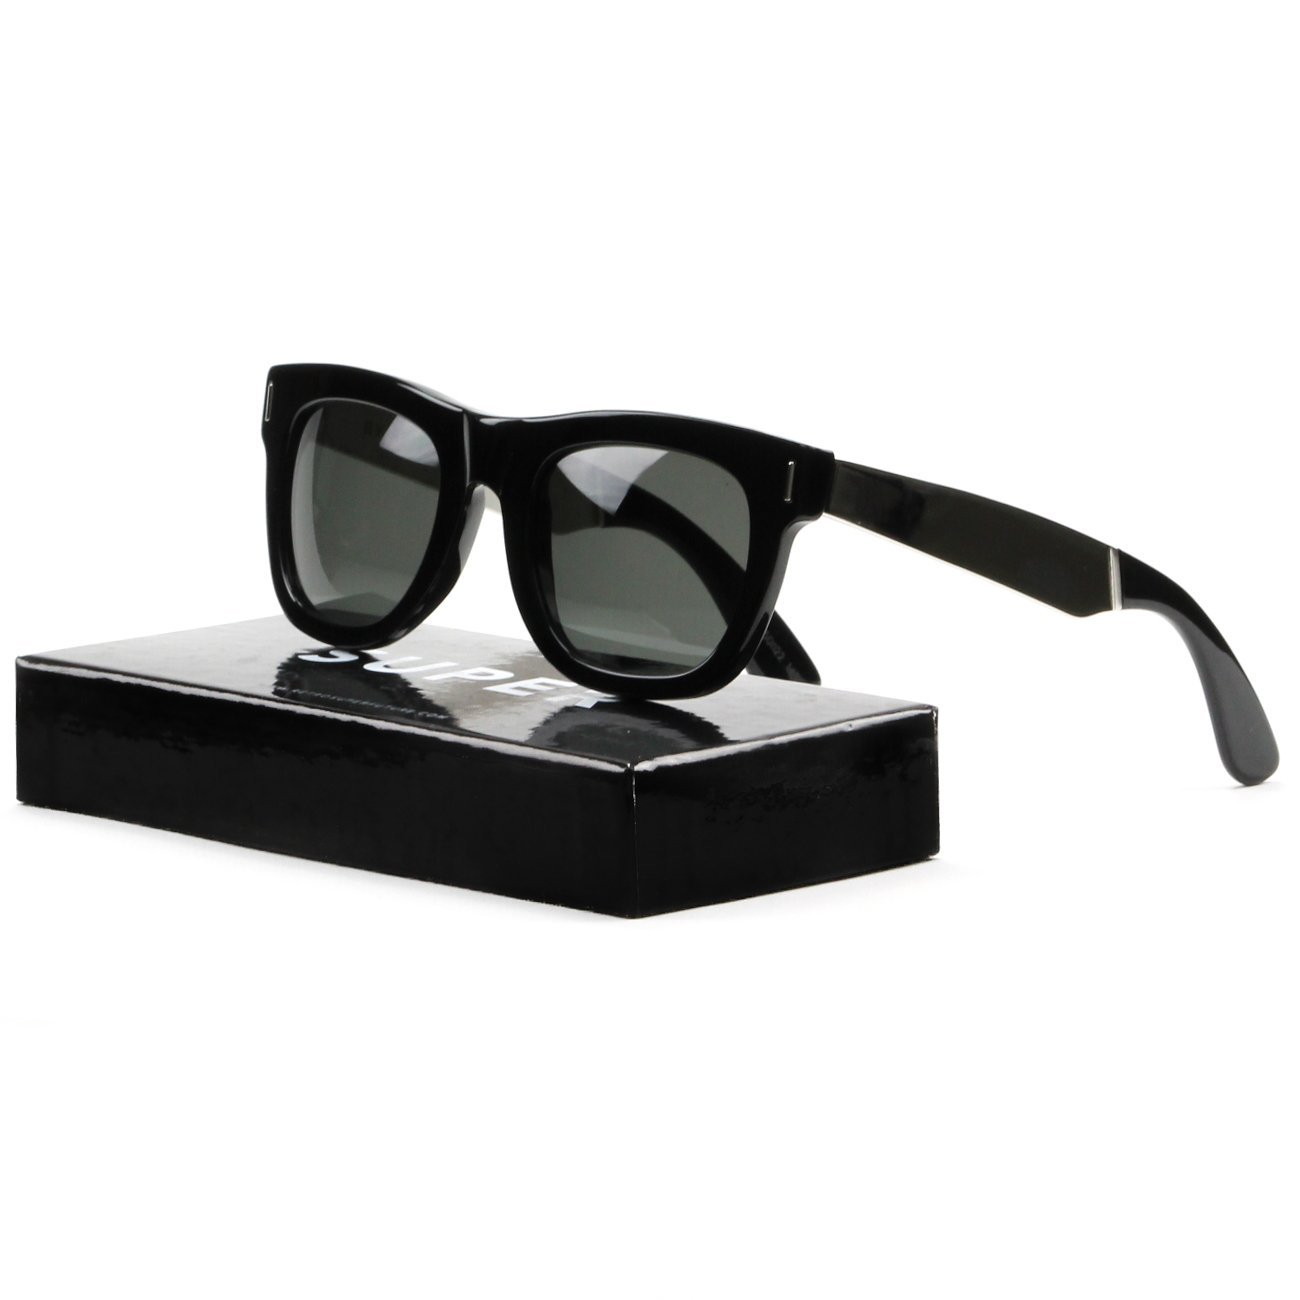 Super Ciccio 767 Sunglasses Silver Francis Black w/ Zeiss Lens RETROSUPERFUTURE